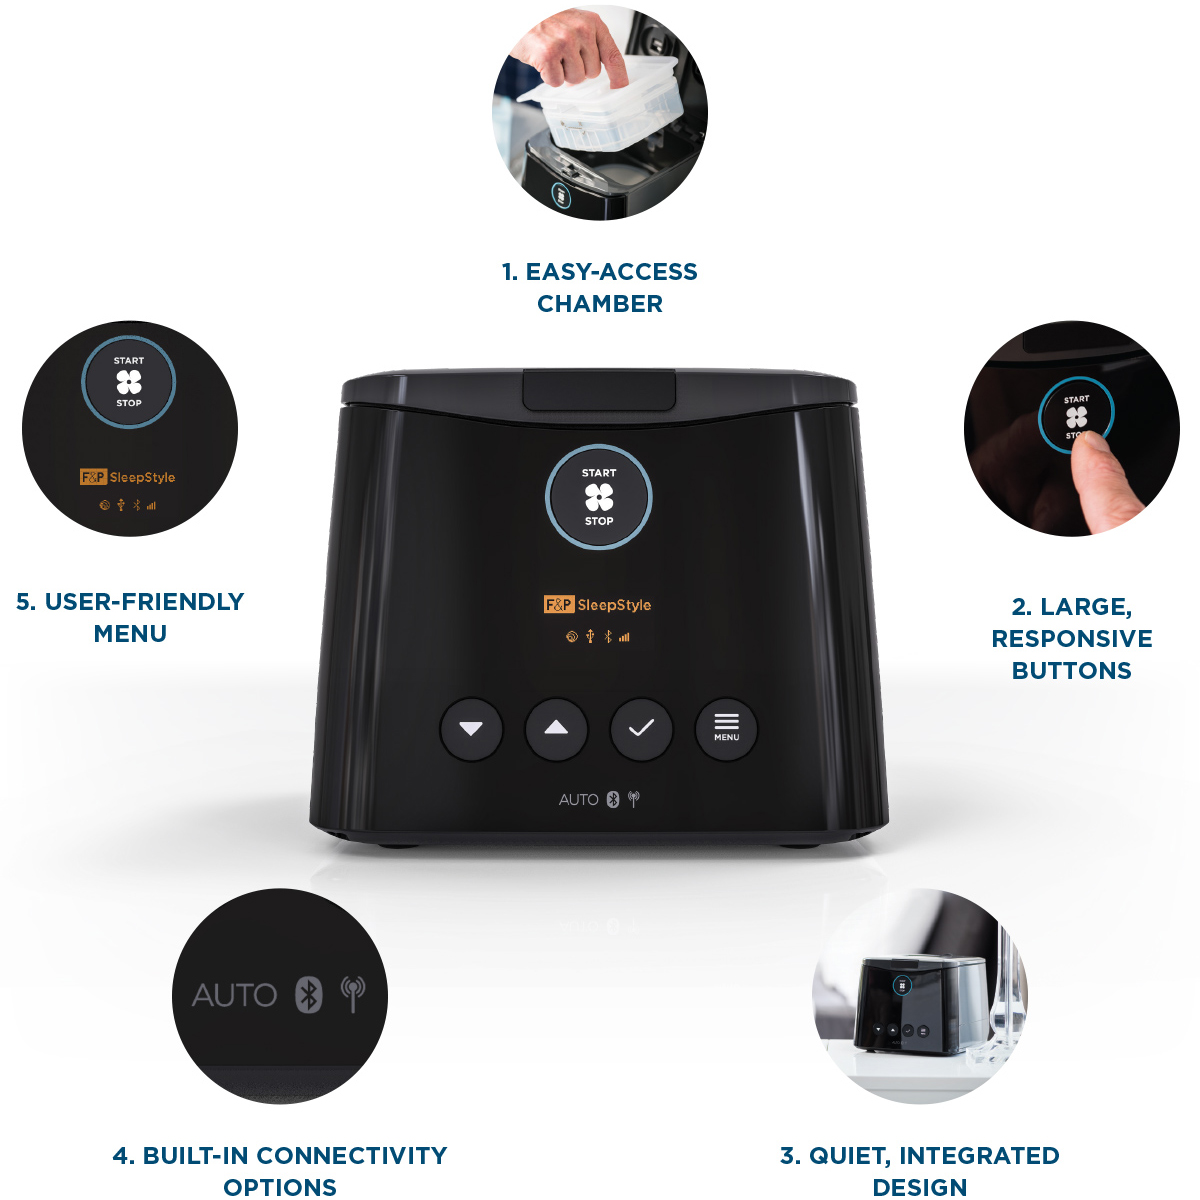 Eson Key Features Glance